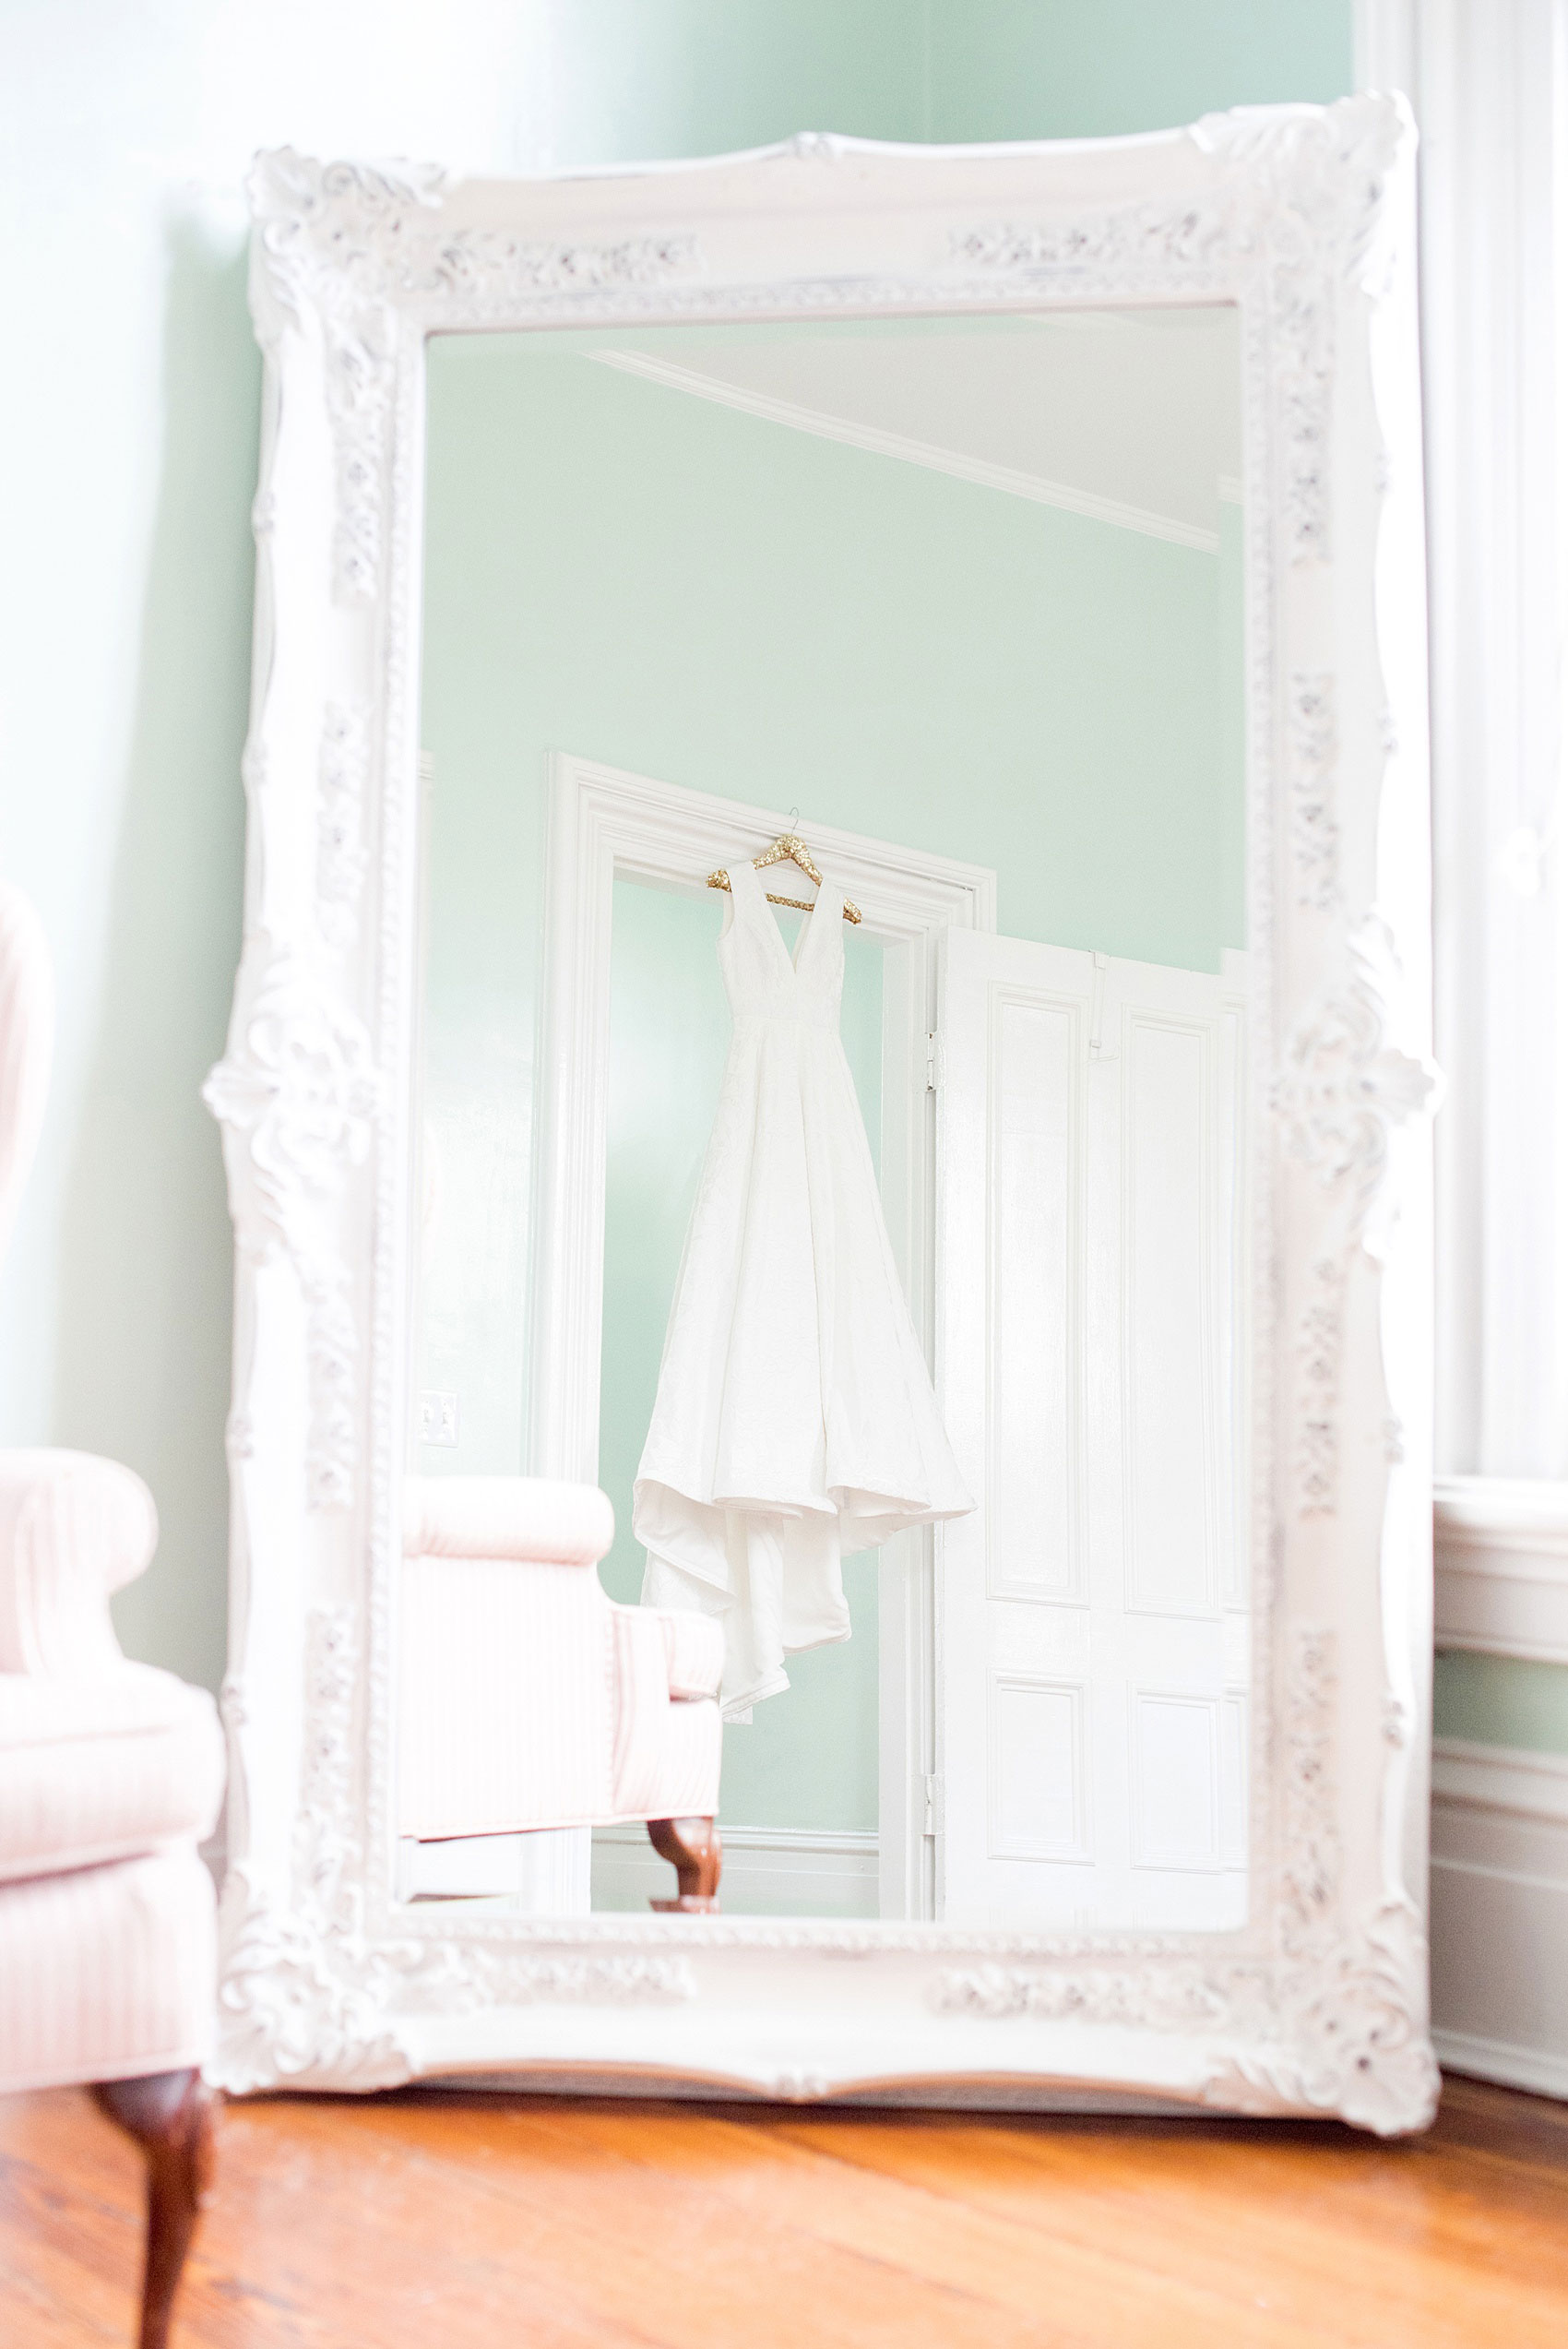 Mikkel Paige Photography pictures from a wedding at Merrimon-Wynne House in Raleigh, NC. Photo of the bride's Kate McDonald dress reflecting in a mirror in the bridal suite.